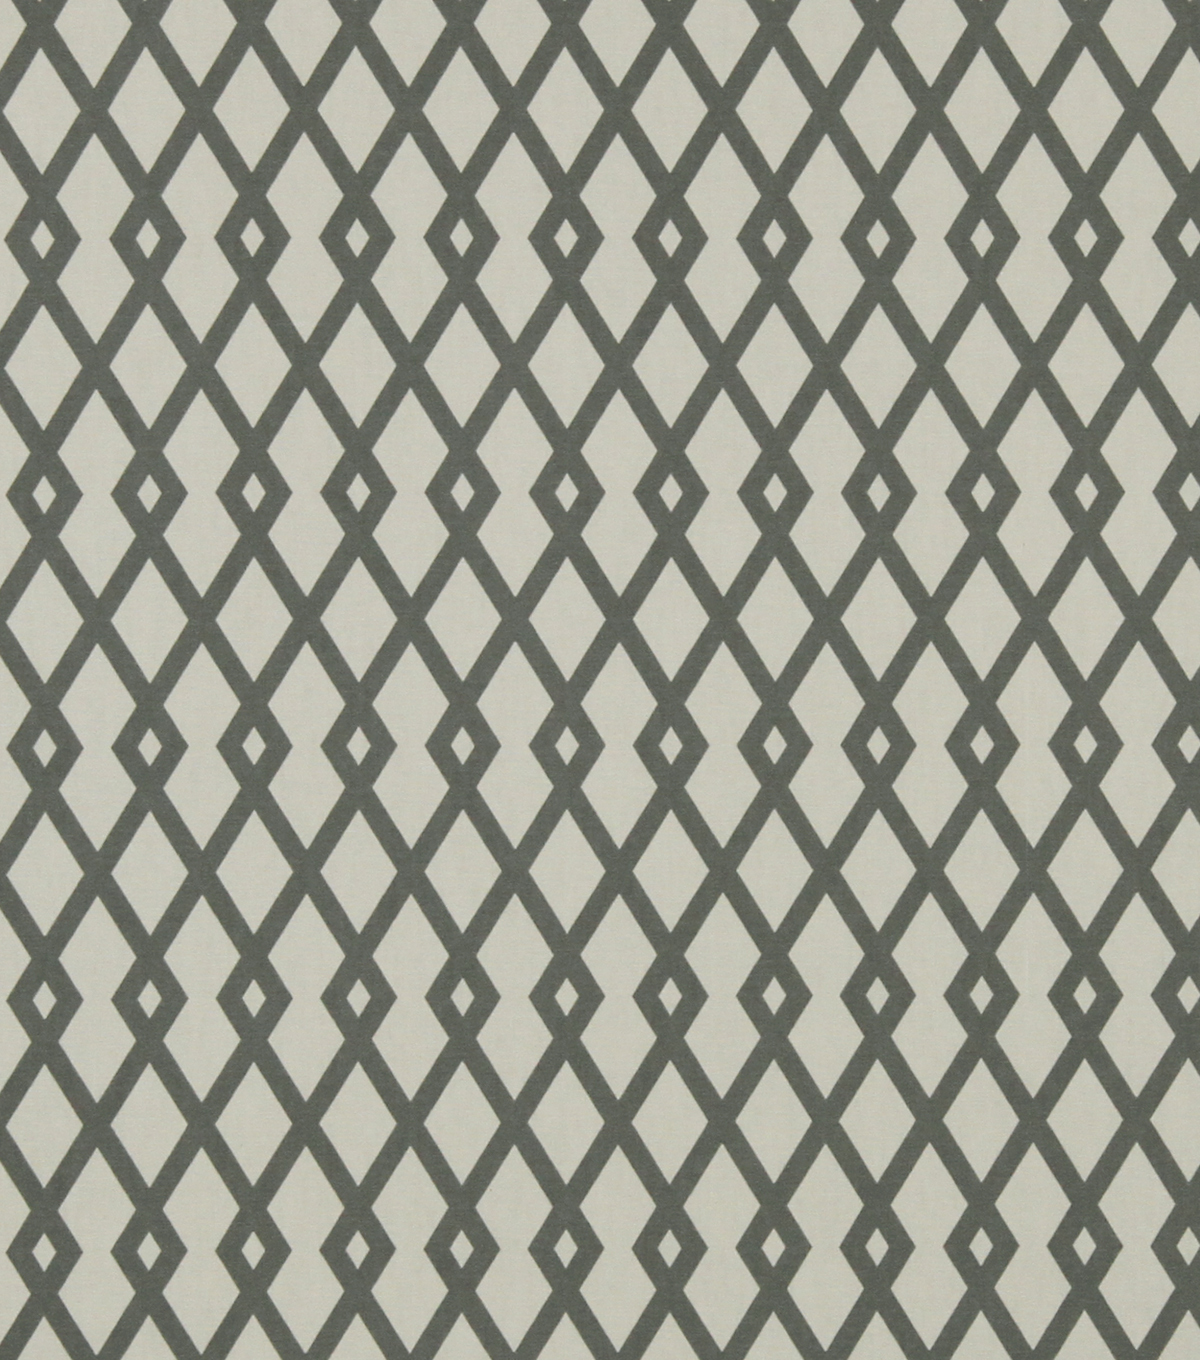 Robert Allen @ Home Upholstery Fabric 55\u0022-Graphic Fret Greystone